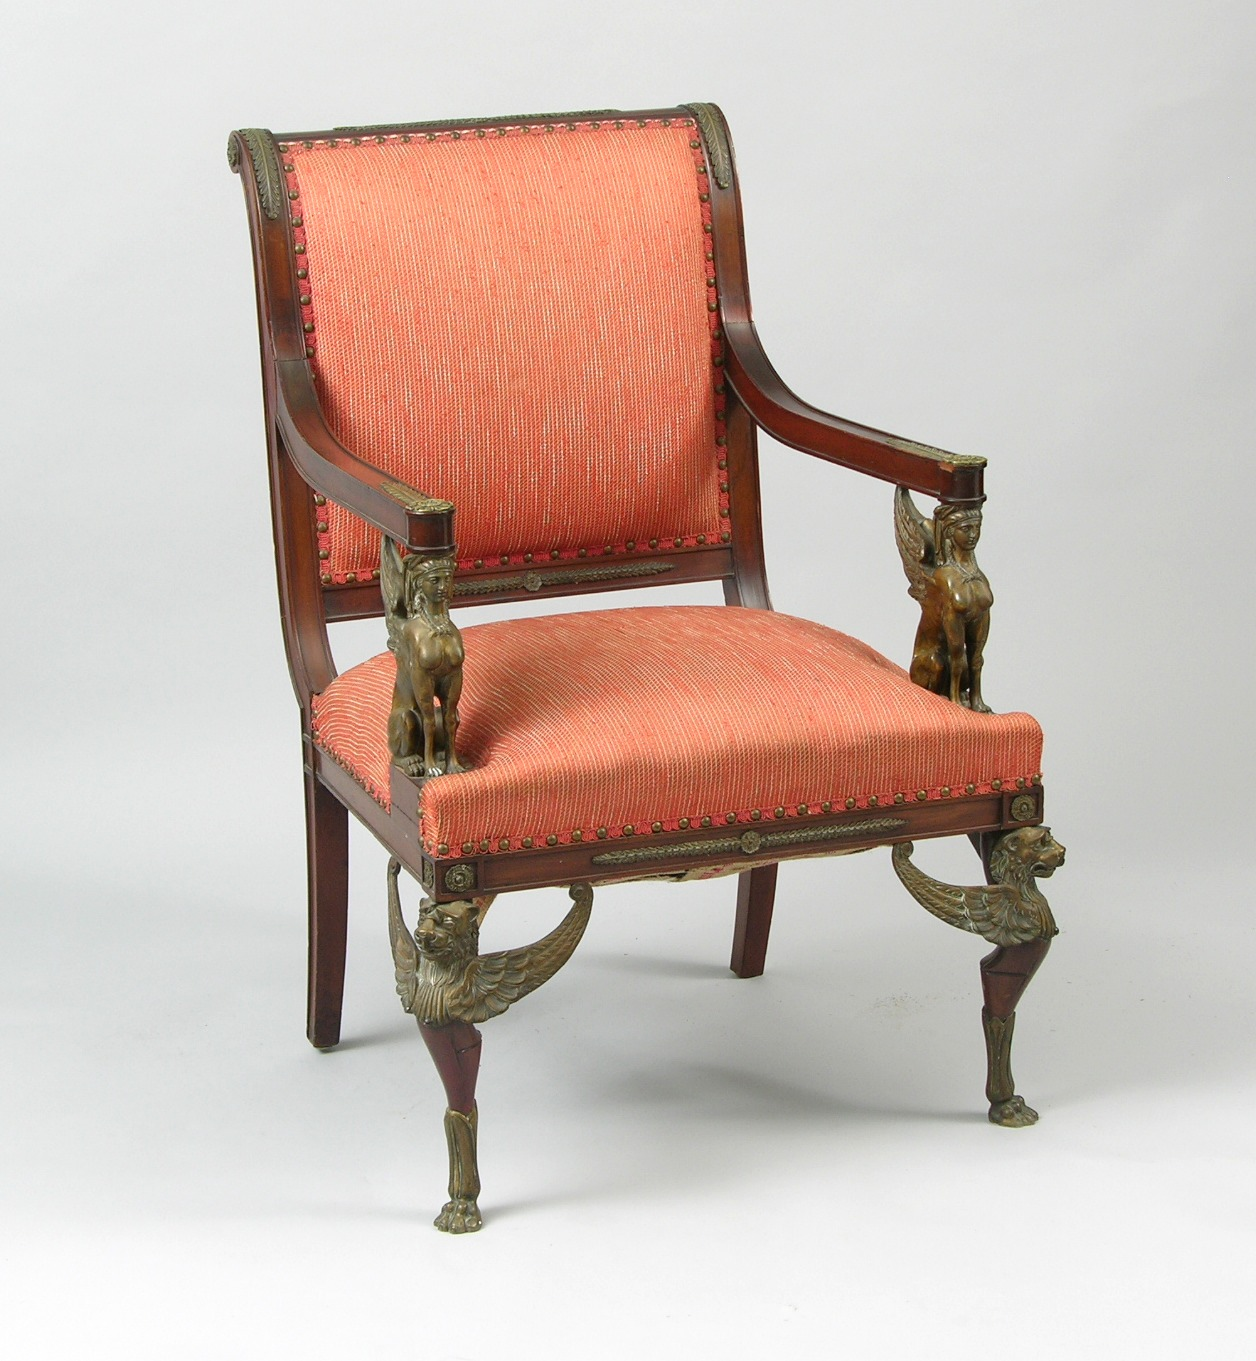 An Antique Armchair Second Empire 03 05 09 Sold 603 75